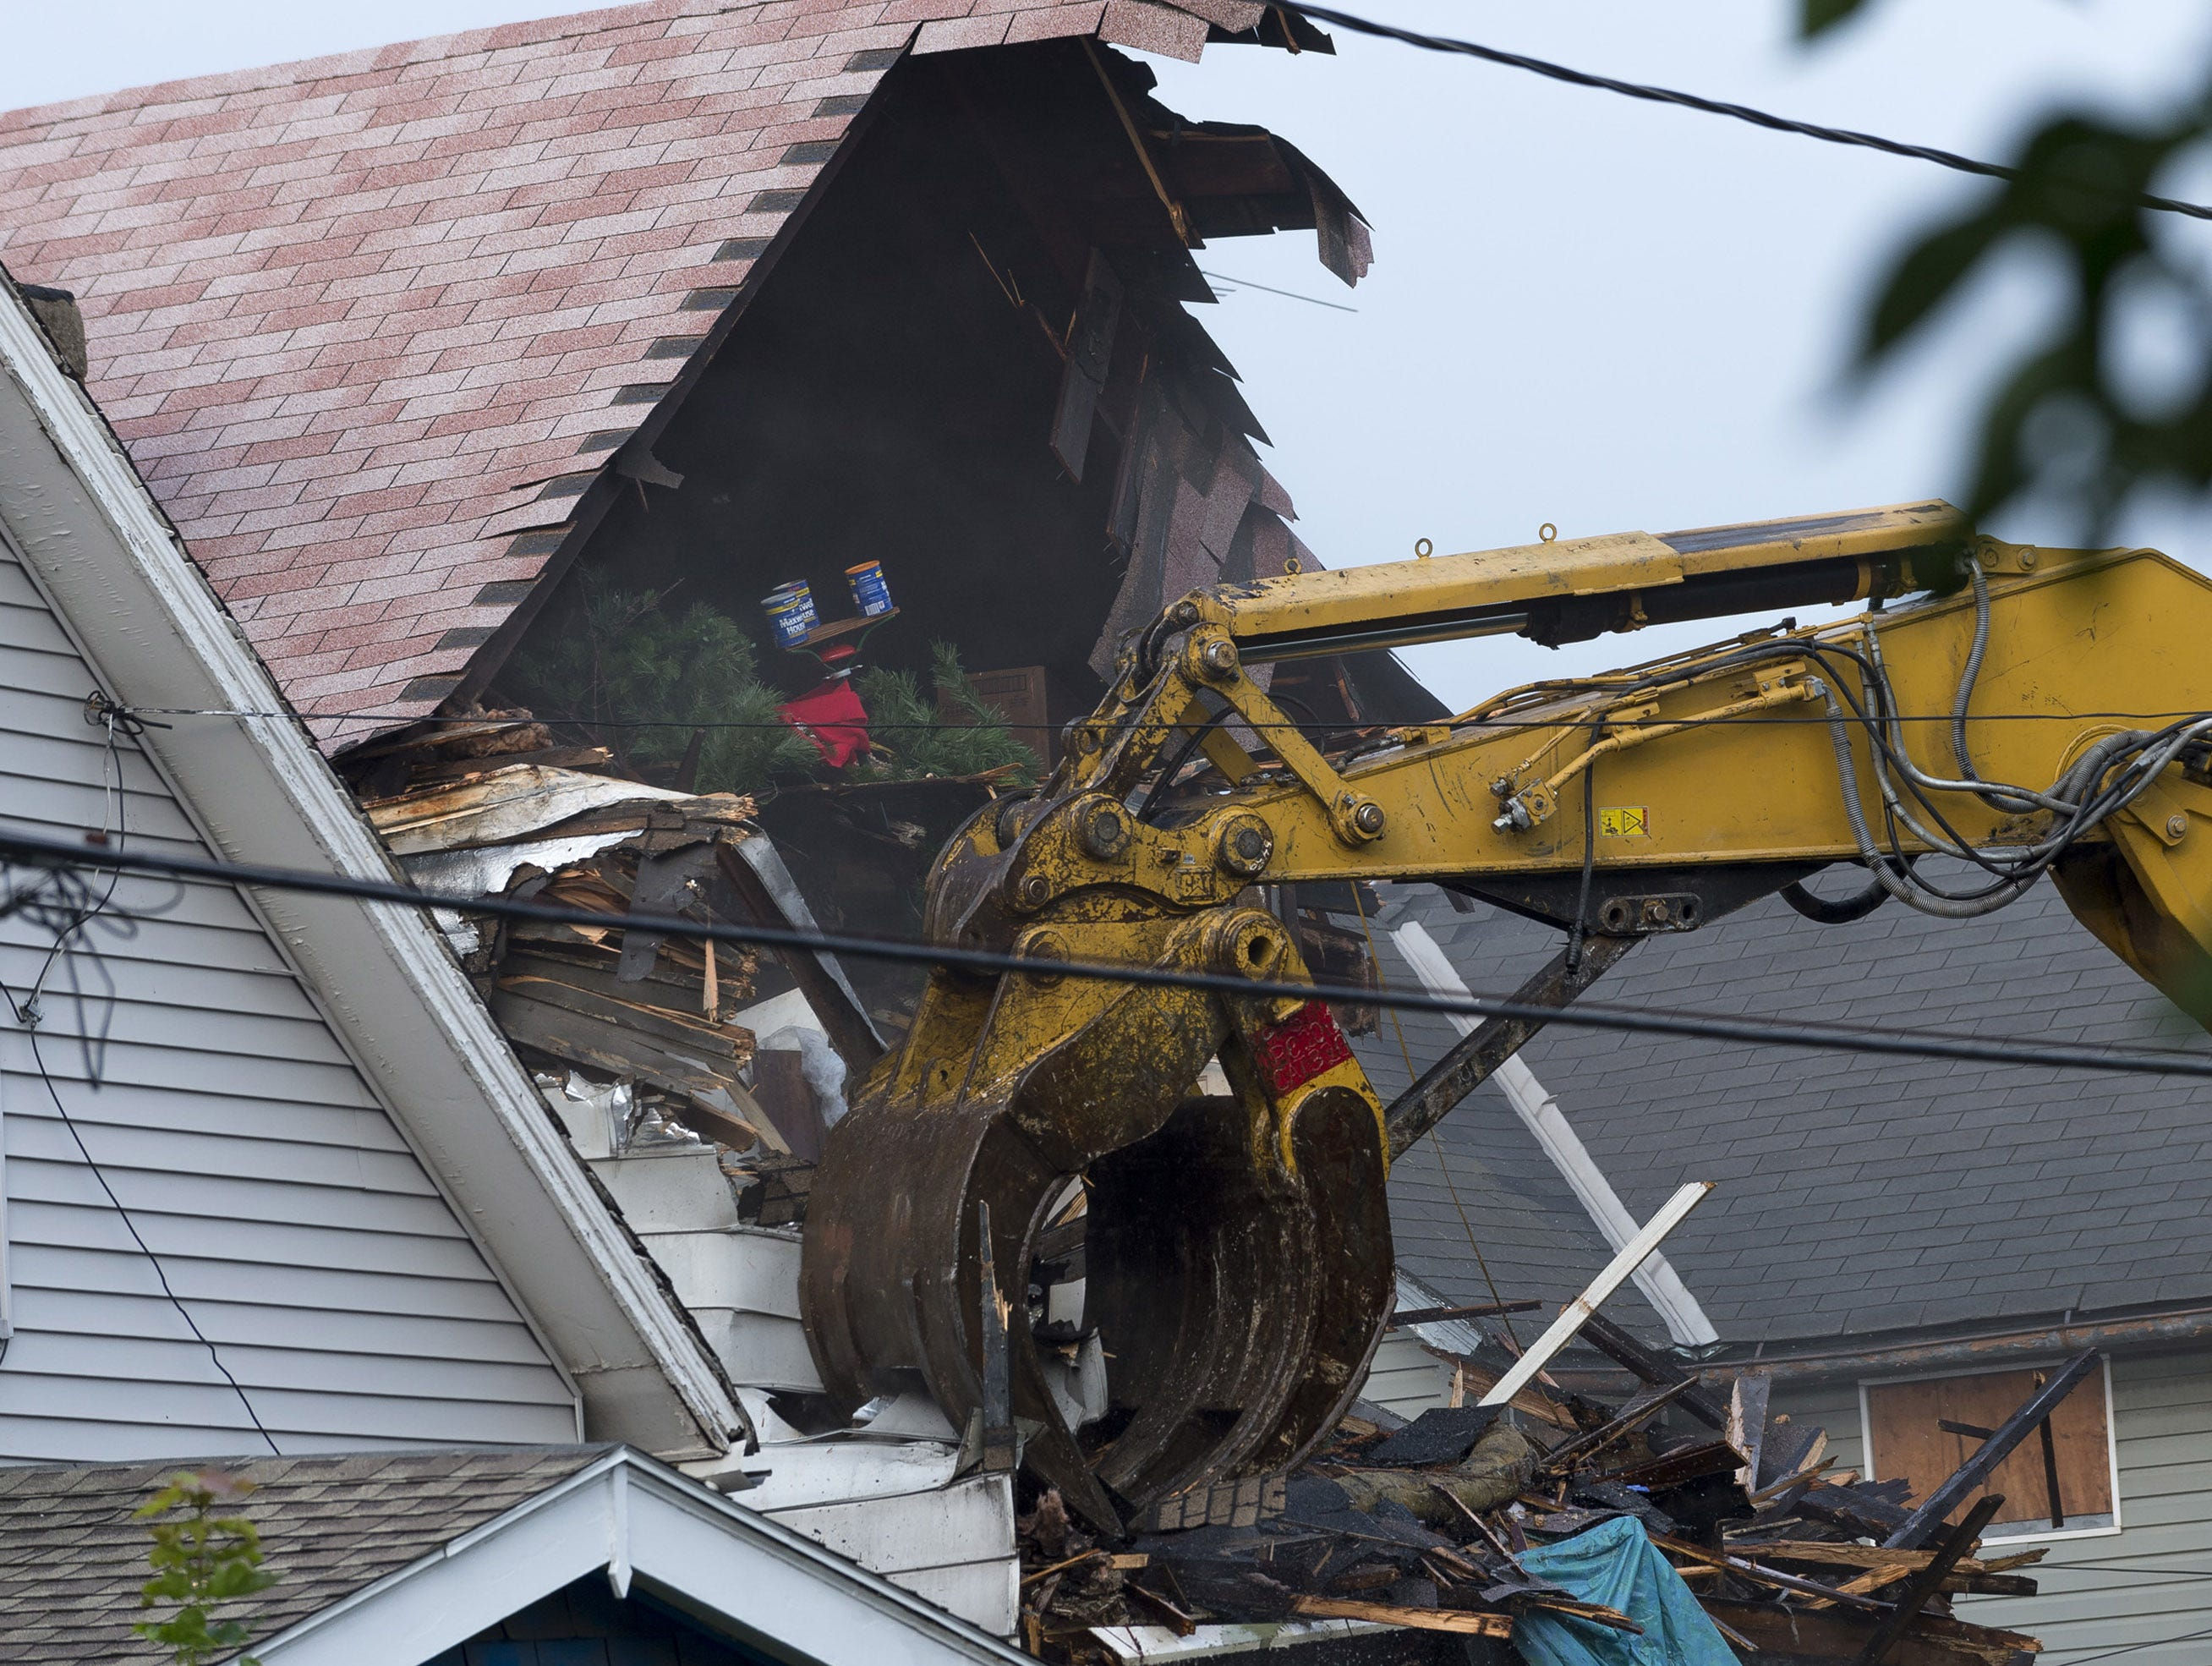 A crane demolishes the home of Ariel Castro on Aug. 7 in Cleveland. Castro, 53, held three women captive in the home for over a decade. He pleaded guilty last month to 937 charges including rape, kidnapping and aggravated murder. He was sentenced last week to life in prison plus 1,000 years.